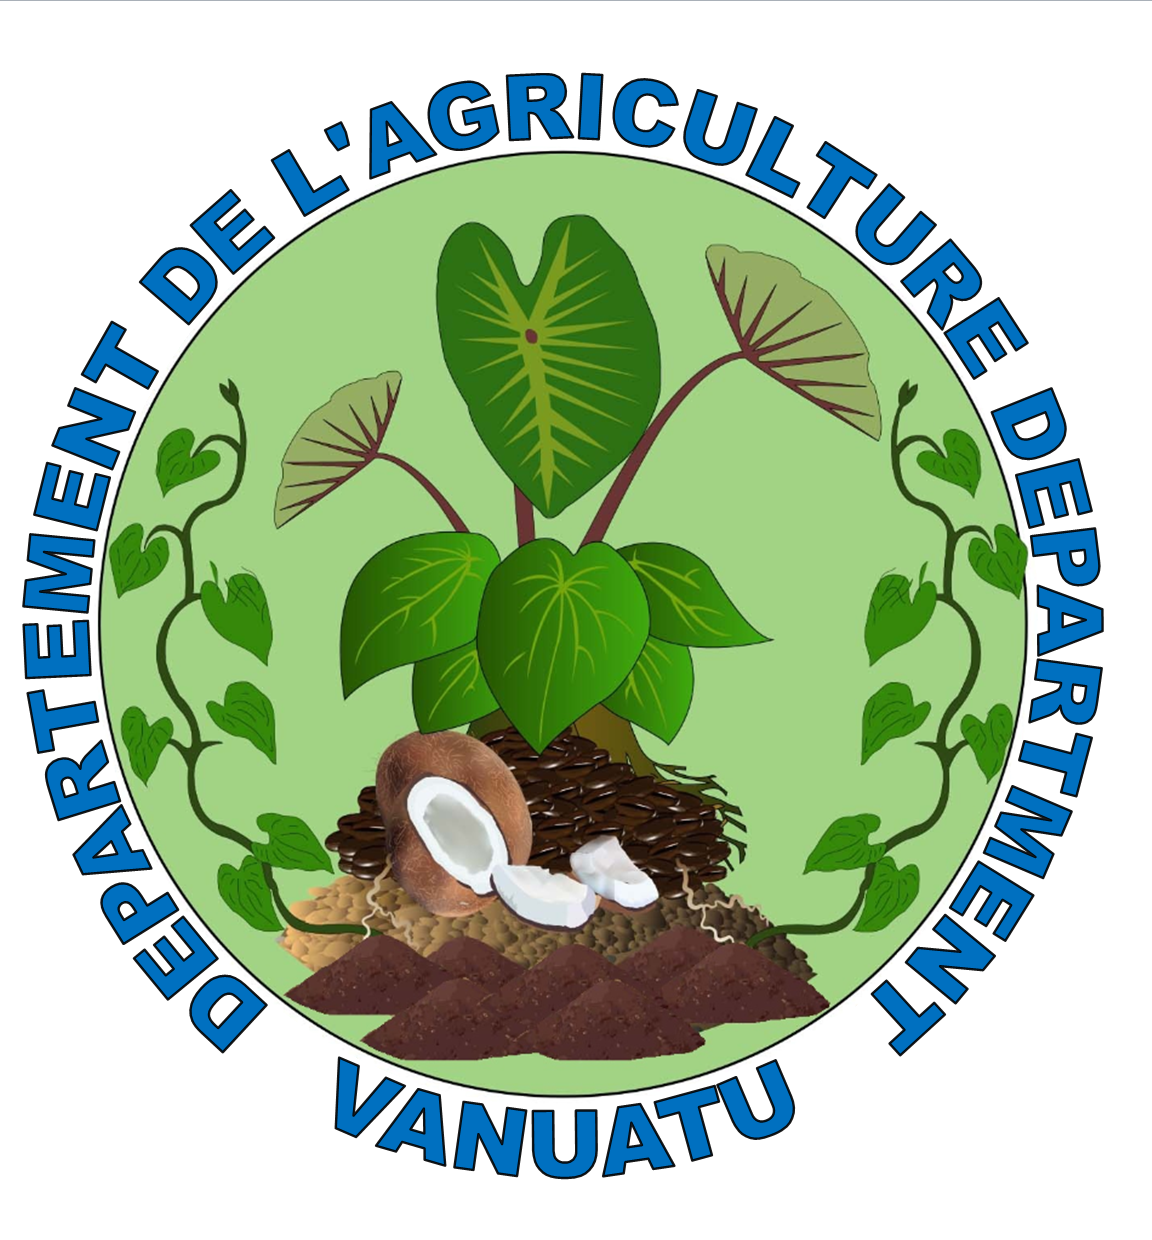 Ministry of livestock forestry. Agriculture clipart rural development